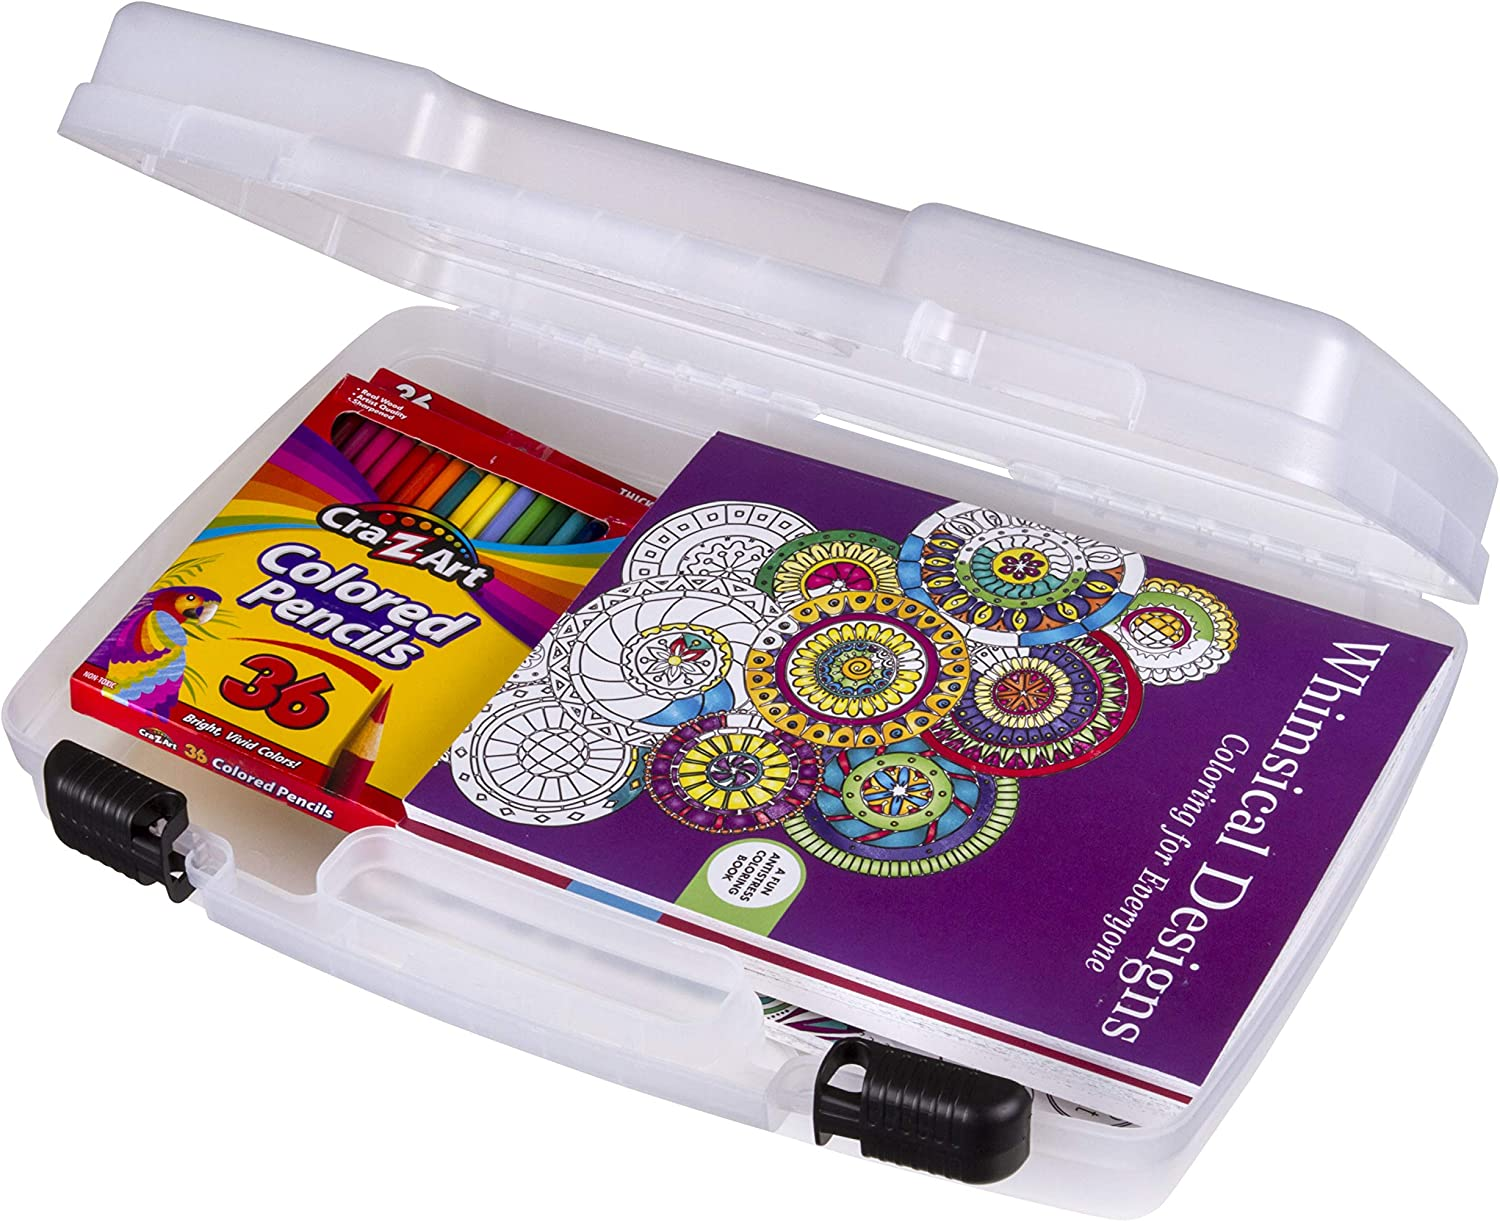 ArtBin 8017AB 17 inch Quick Portable Houston Mall Carrying Craft Art SALENEW very popular View